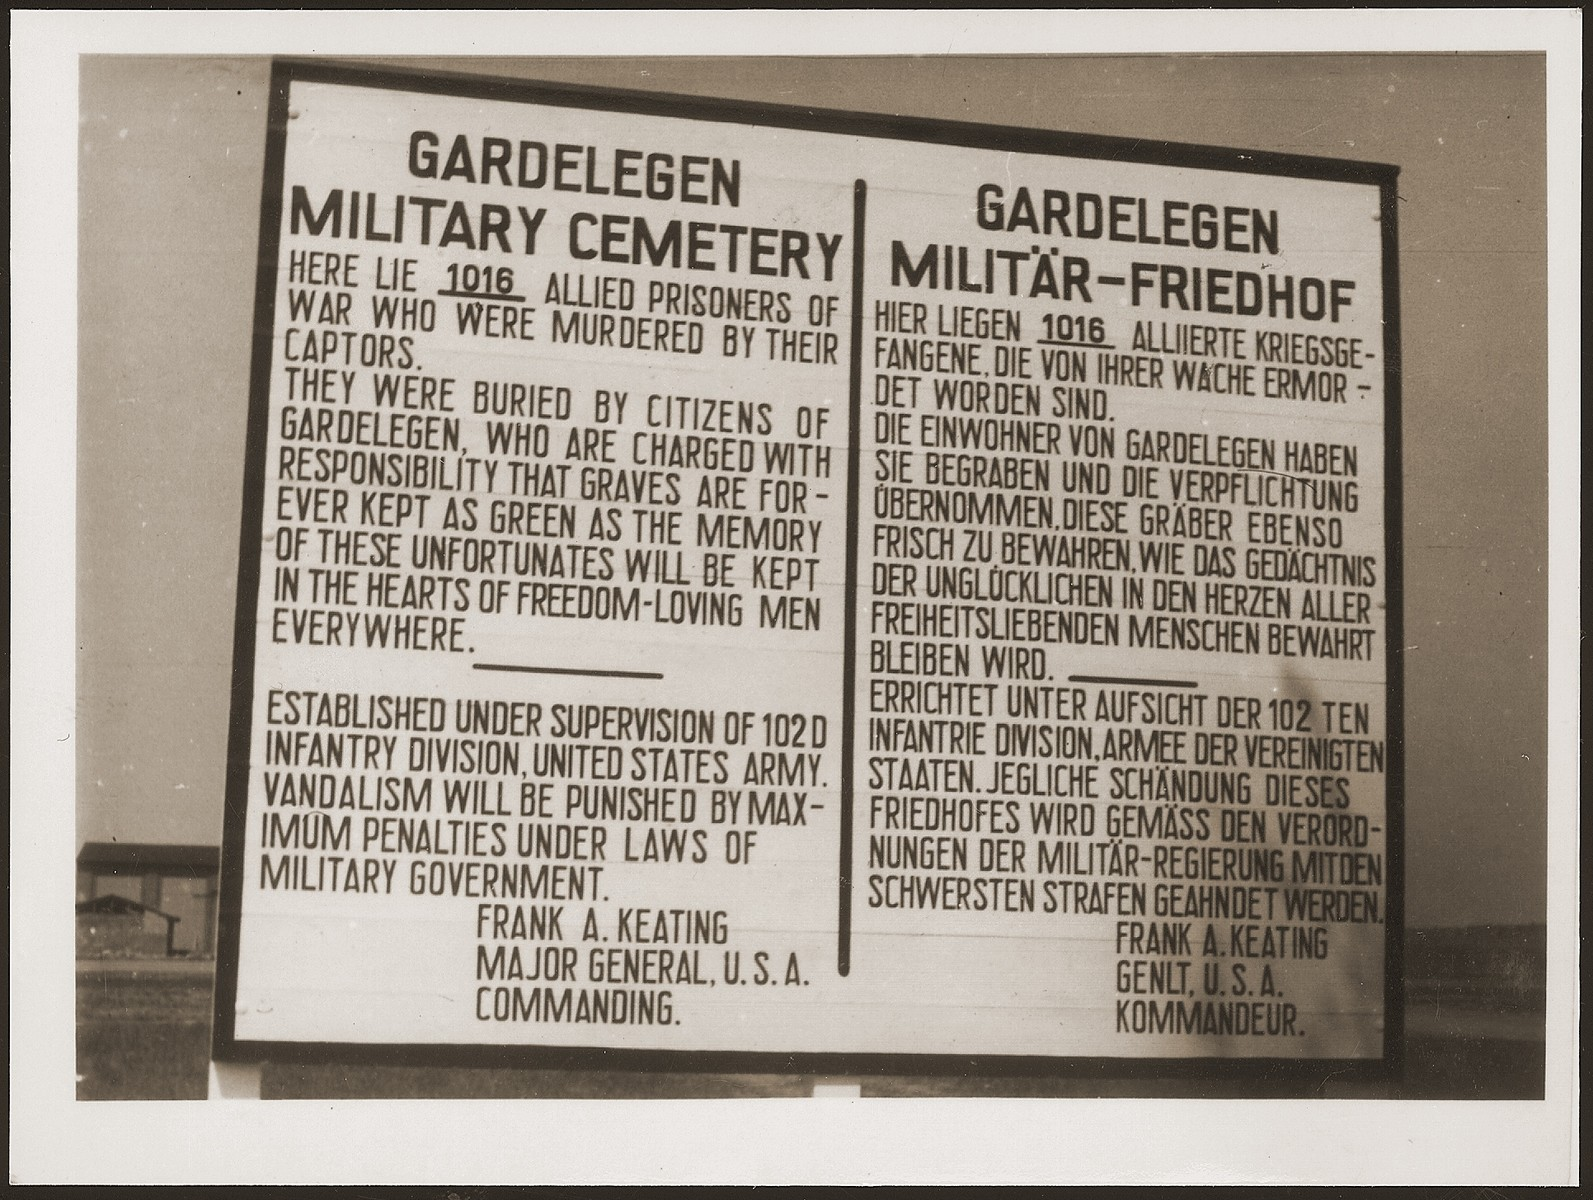 A sign erected at the Military Cemetery in Gardelegen in memory of 1,016 prisoners who were killed by the SS in a barn near the town.